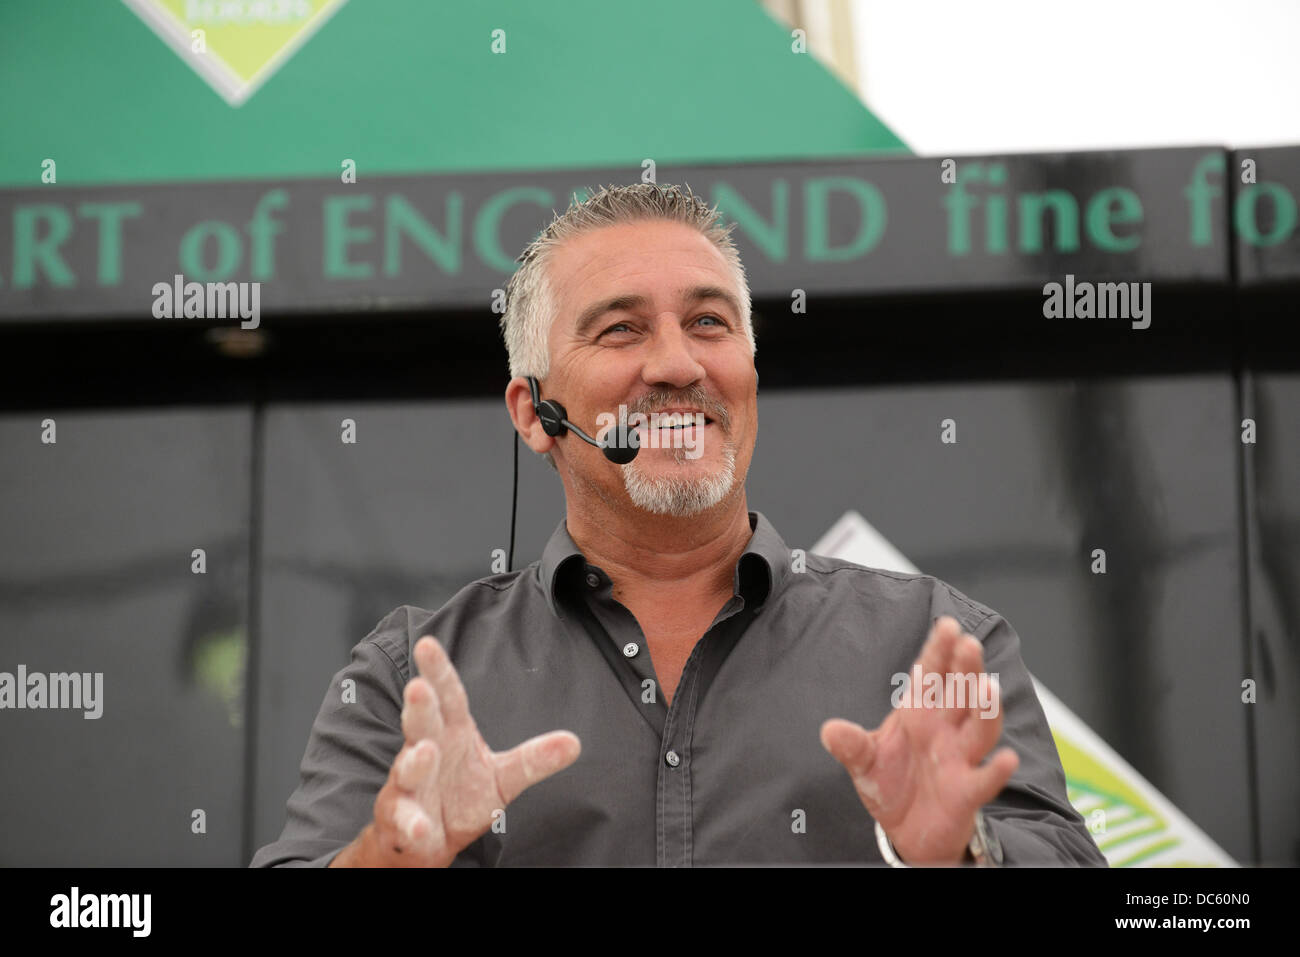 Shrewsbury Flower Show Uk 9 août 2013. Célébrité de la télévision baker Paul Hollywood Photo Stock